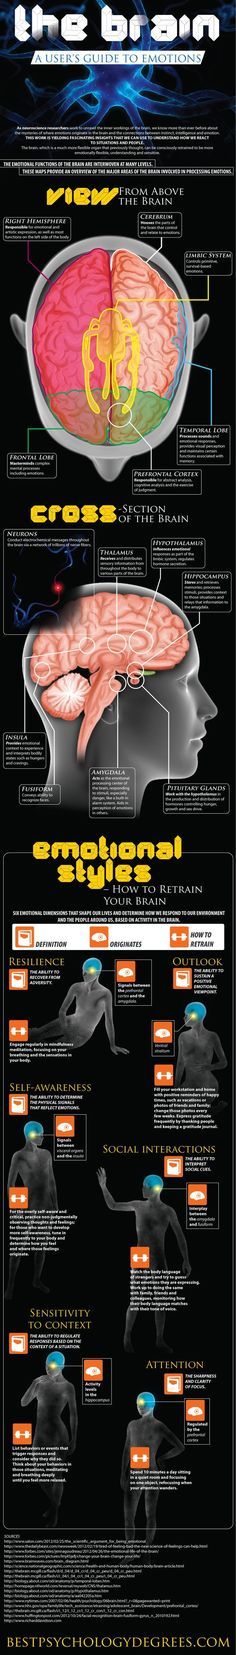 """The Brain: A Users Guide To Emotions """"As neuroscience researchers work to unravel the inner workings of the brain, we know more than ever before about the mysteries of where emotions originate in the brain and the connections between instinct, intelligence and emotion."""""""